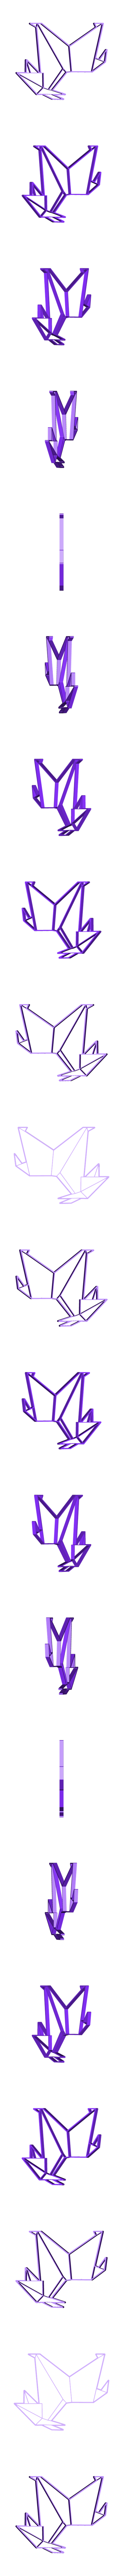 customized_origami_goat.stl Download free STL file Customizable Origami Goat • 3D printing object, MightyNozzle